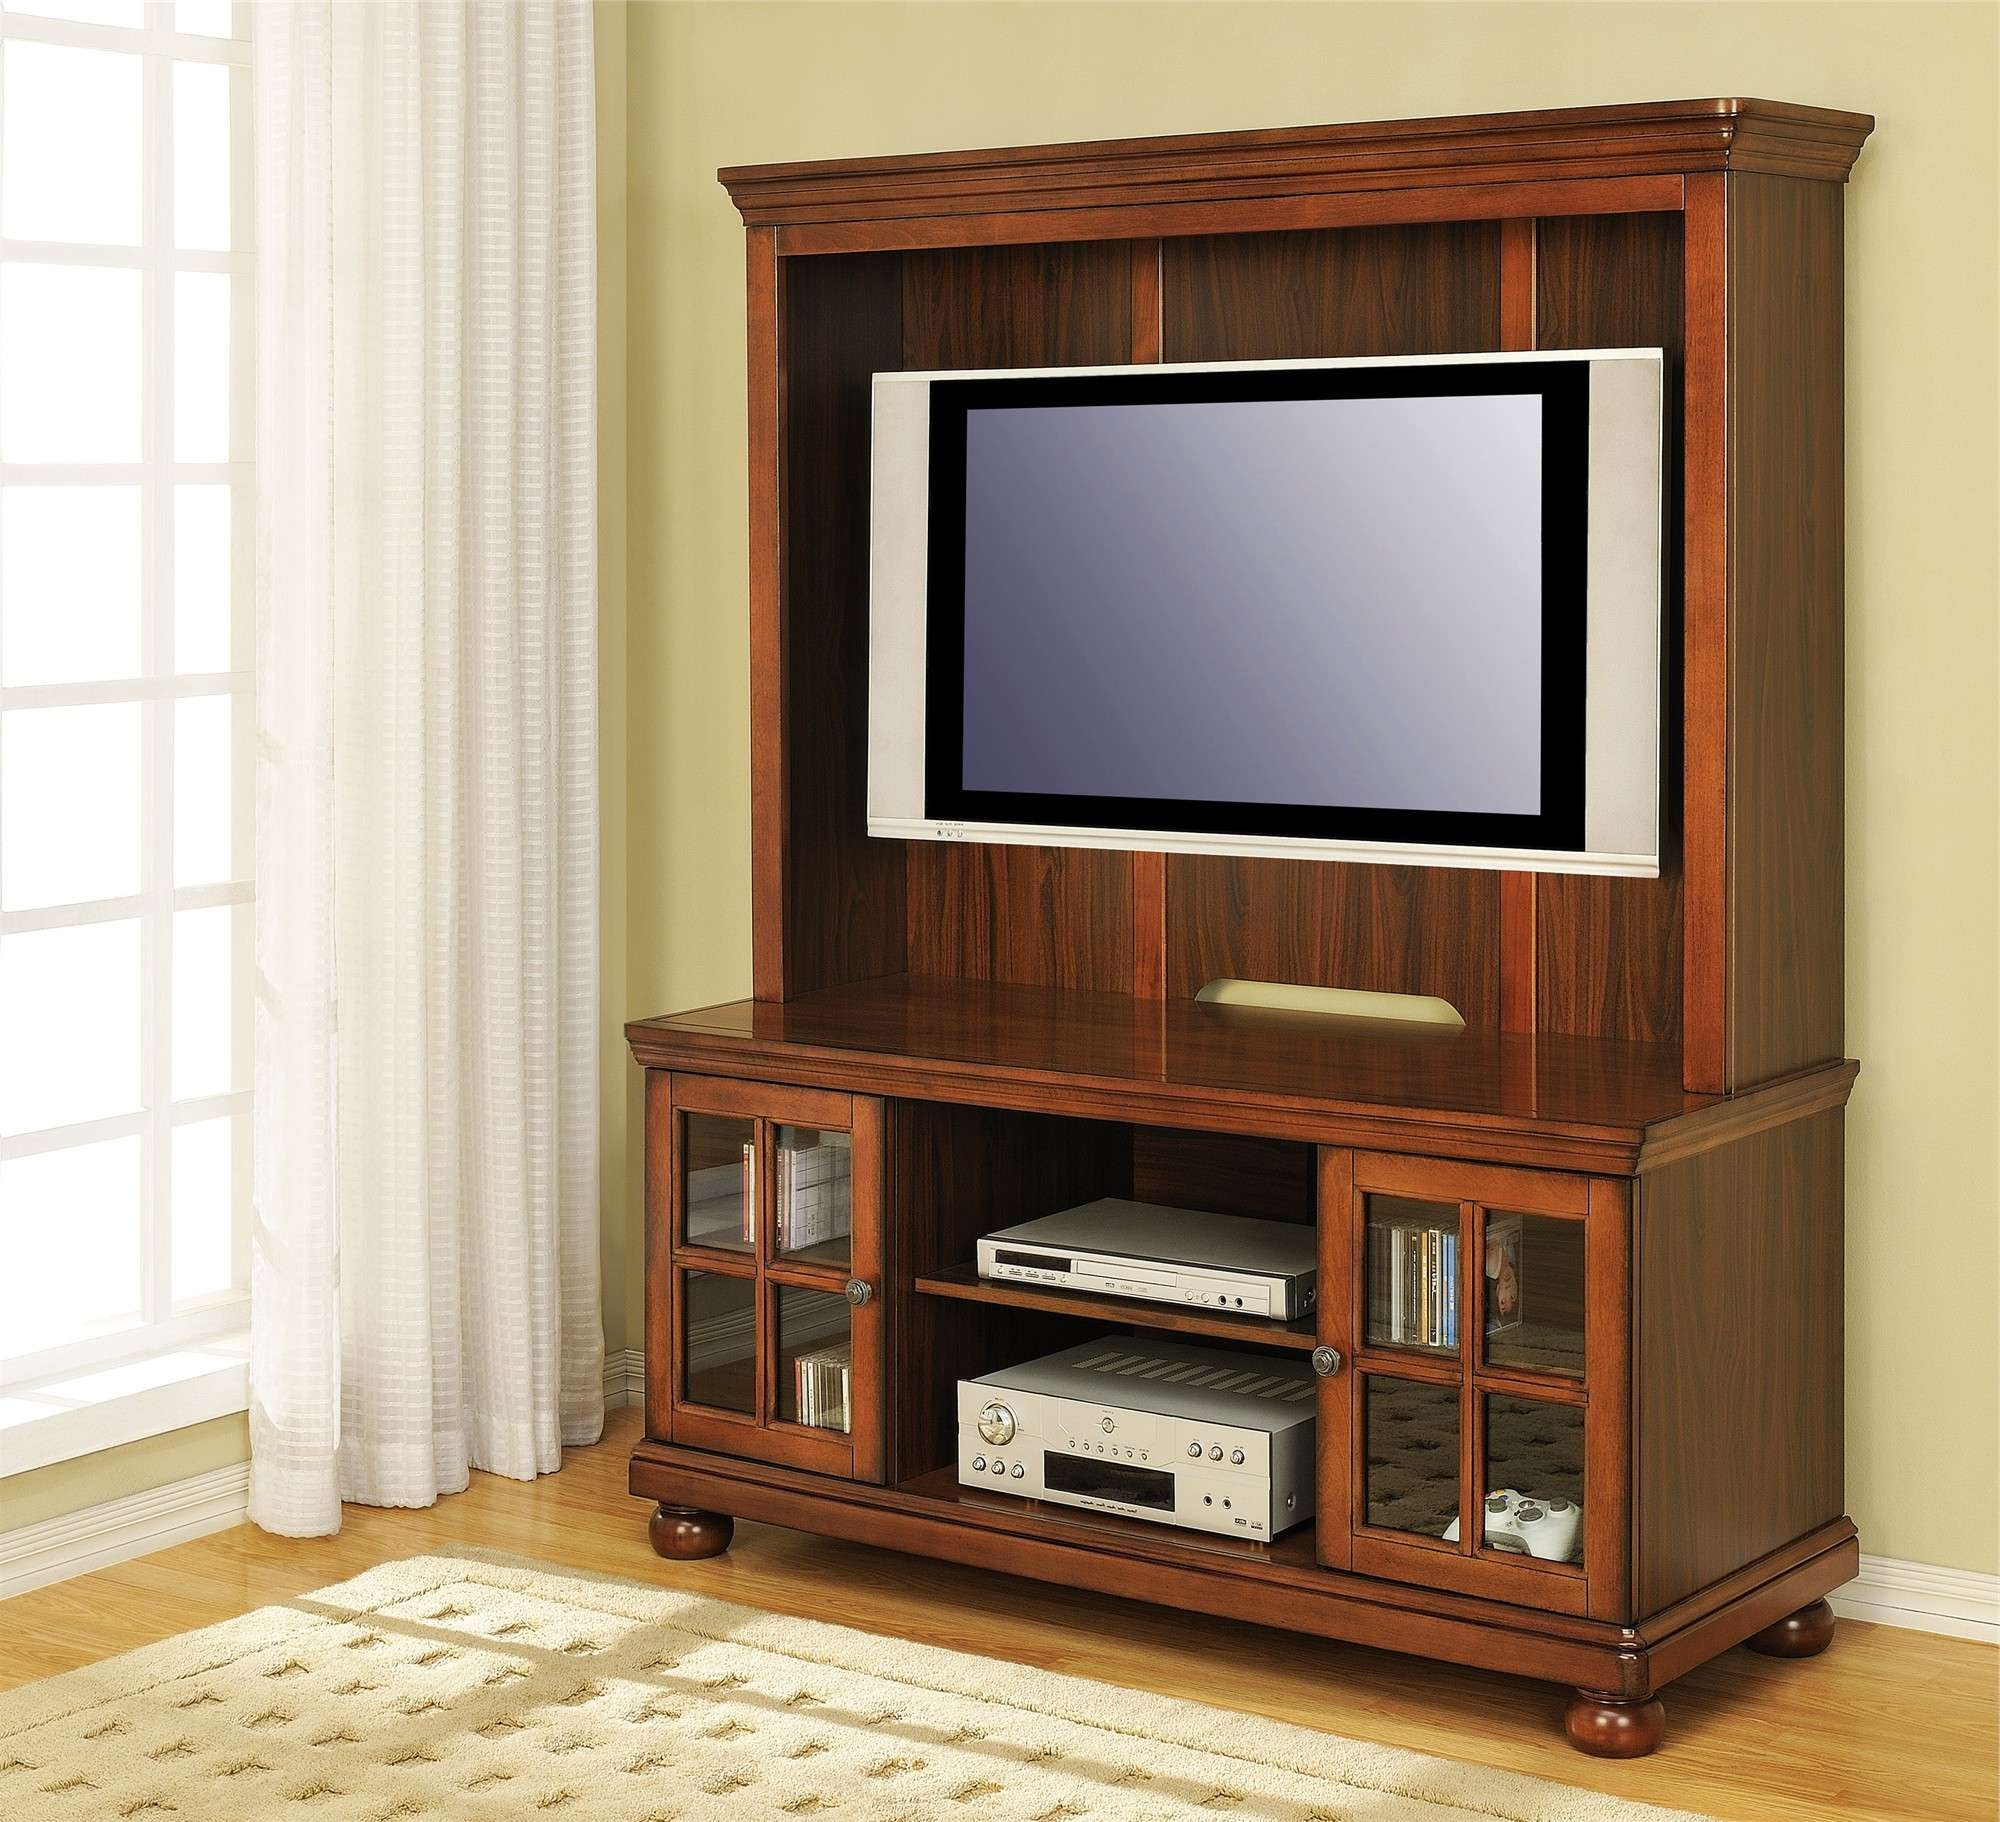 Exquisite Decoration Corner Tv Cabinet For Flat Screens Best Home Throughout Corner Tv Stands For Flat Screen (View 9 of 15)